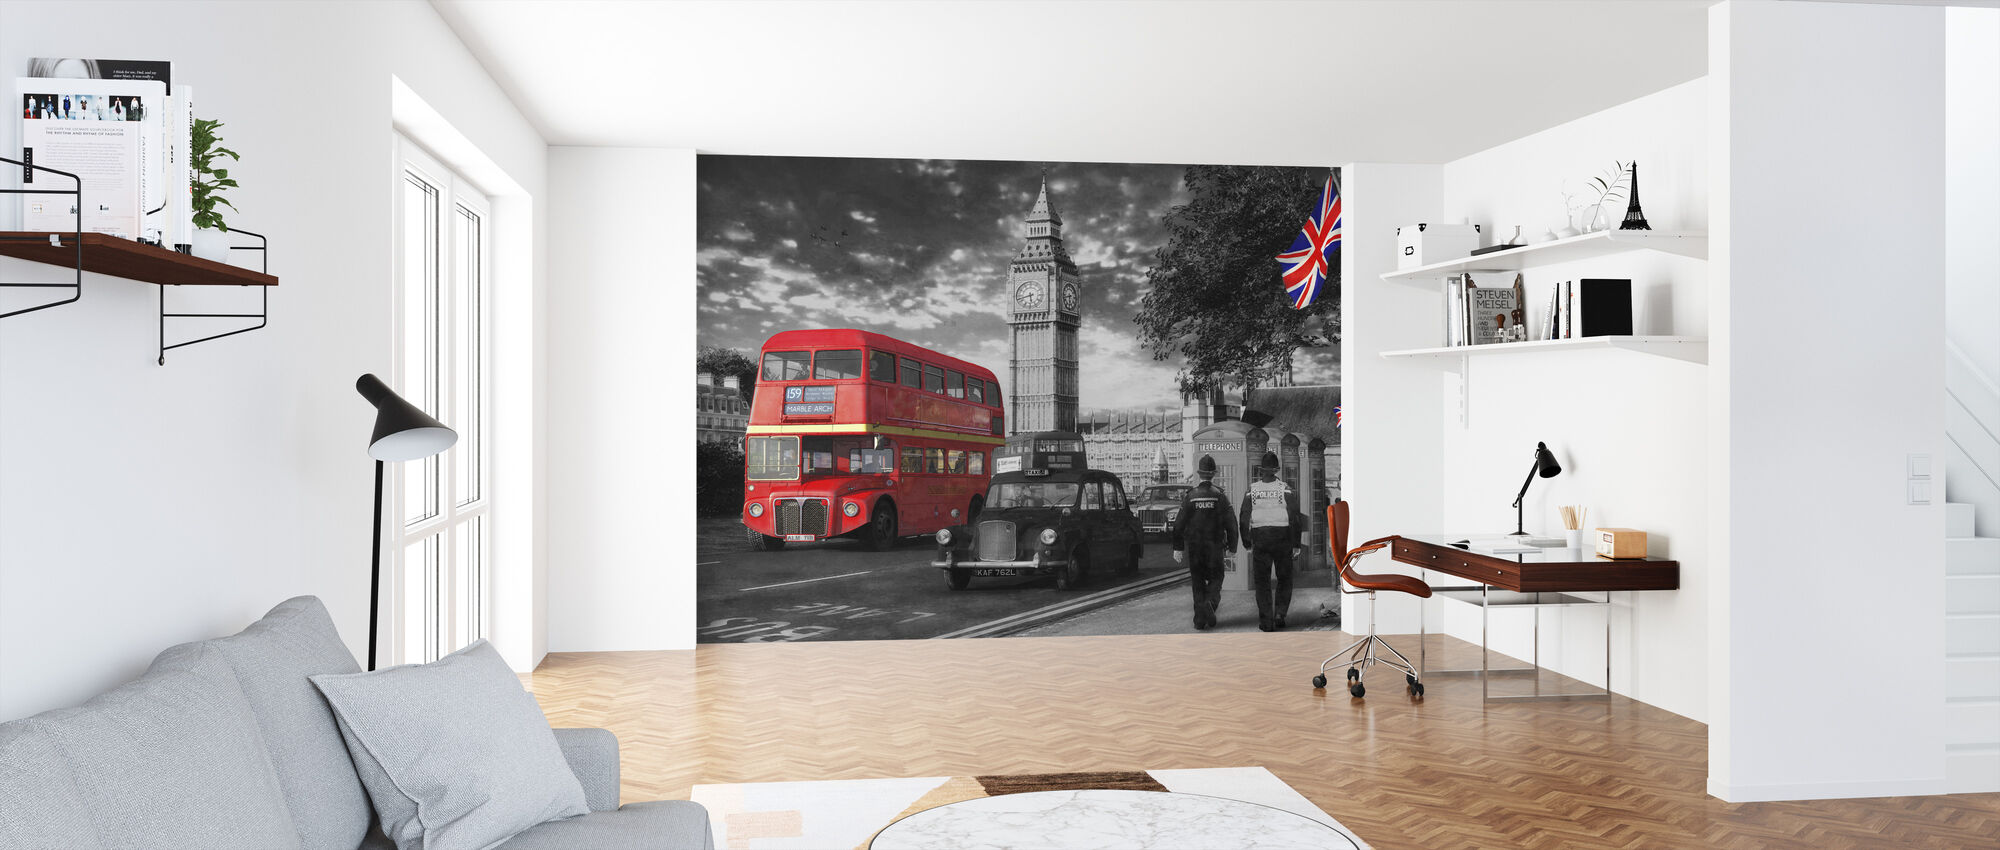 Parliament Square - Wallpaper - Office